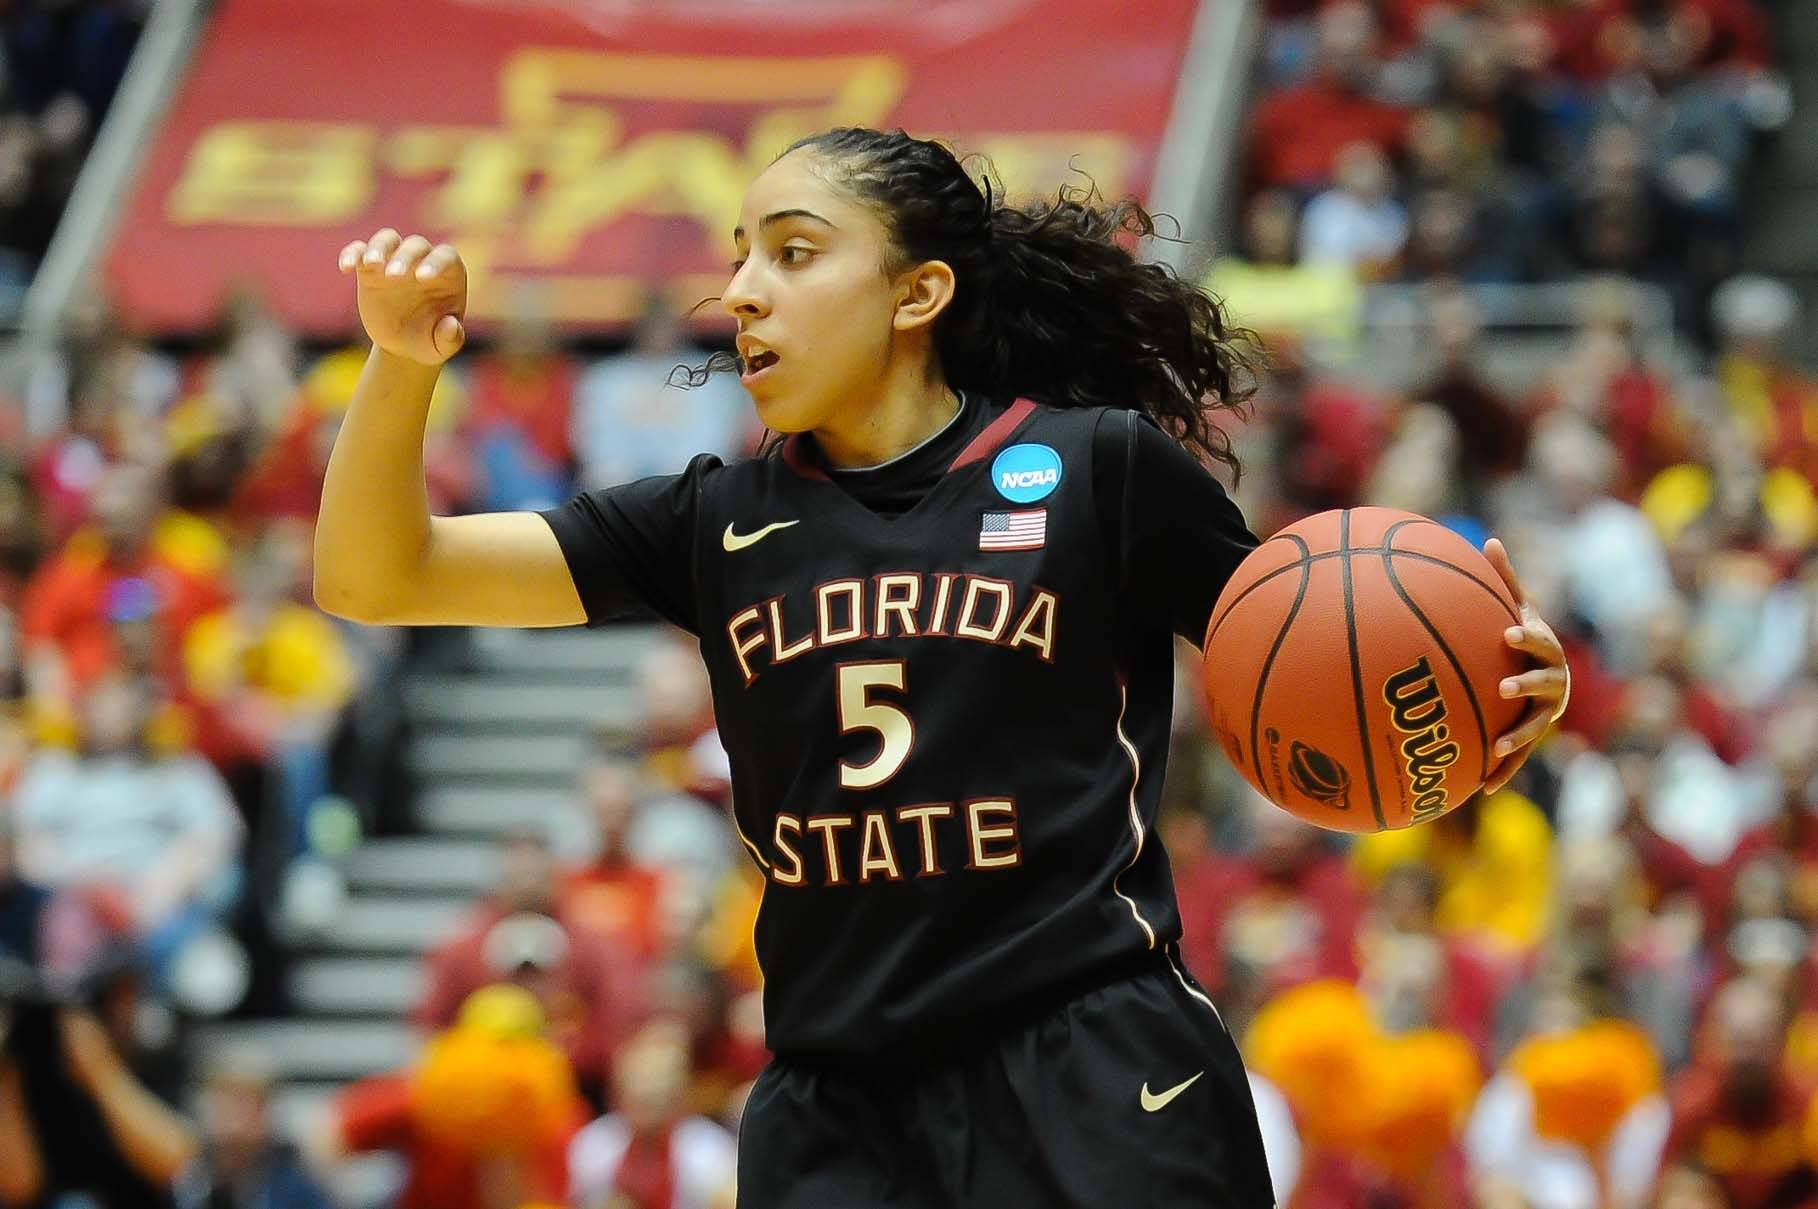 Mar 22, 2014; Ames, IA, USA; Florida State Seminoles guard Cheetah Delgado (5) calls out a play against the Iowa State Cyclones. Mandatory Credit: Steven Branscombe-USA TODAY Sports